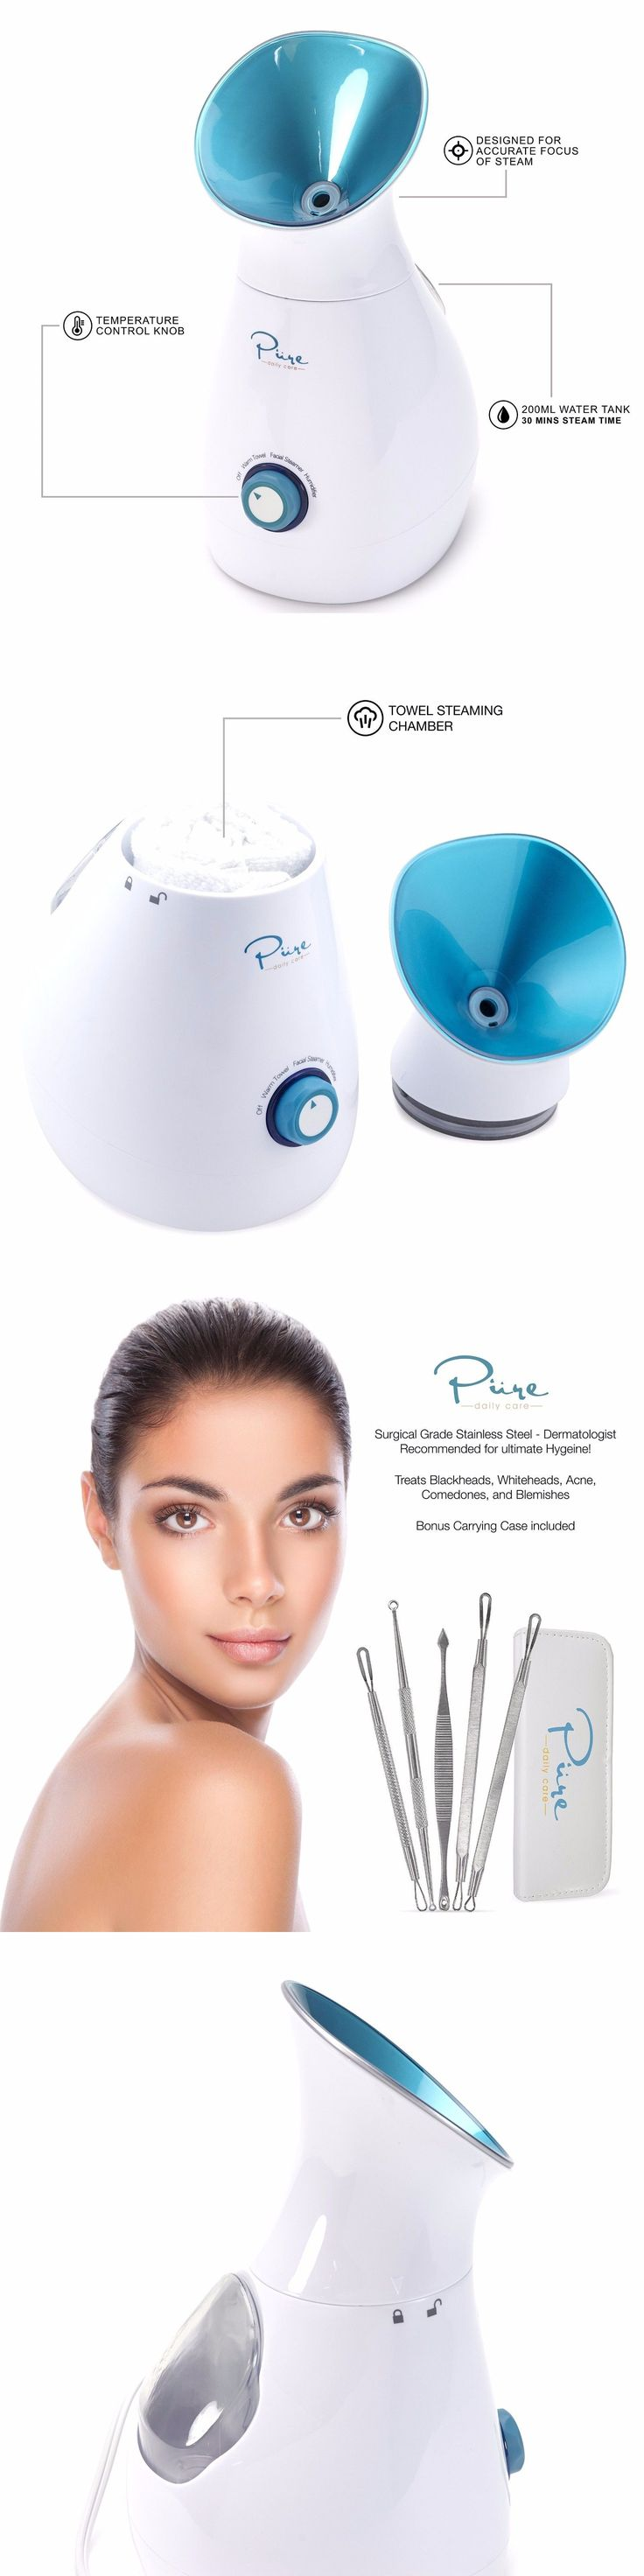 Professional Facial Machines: Facial Skin Steamer Nano Ozone Machine Portable Spa With Temperature Contro Best -> BUY IT NOW ONLY: $56.99 on eBay!